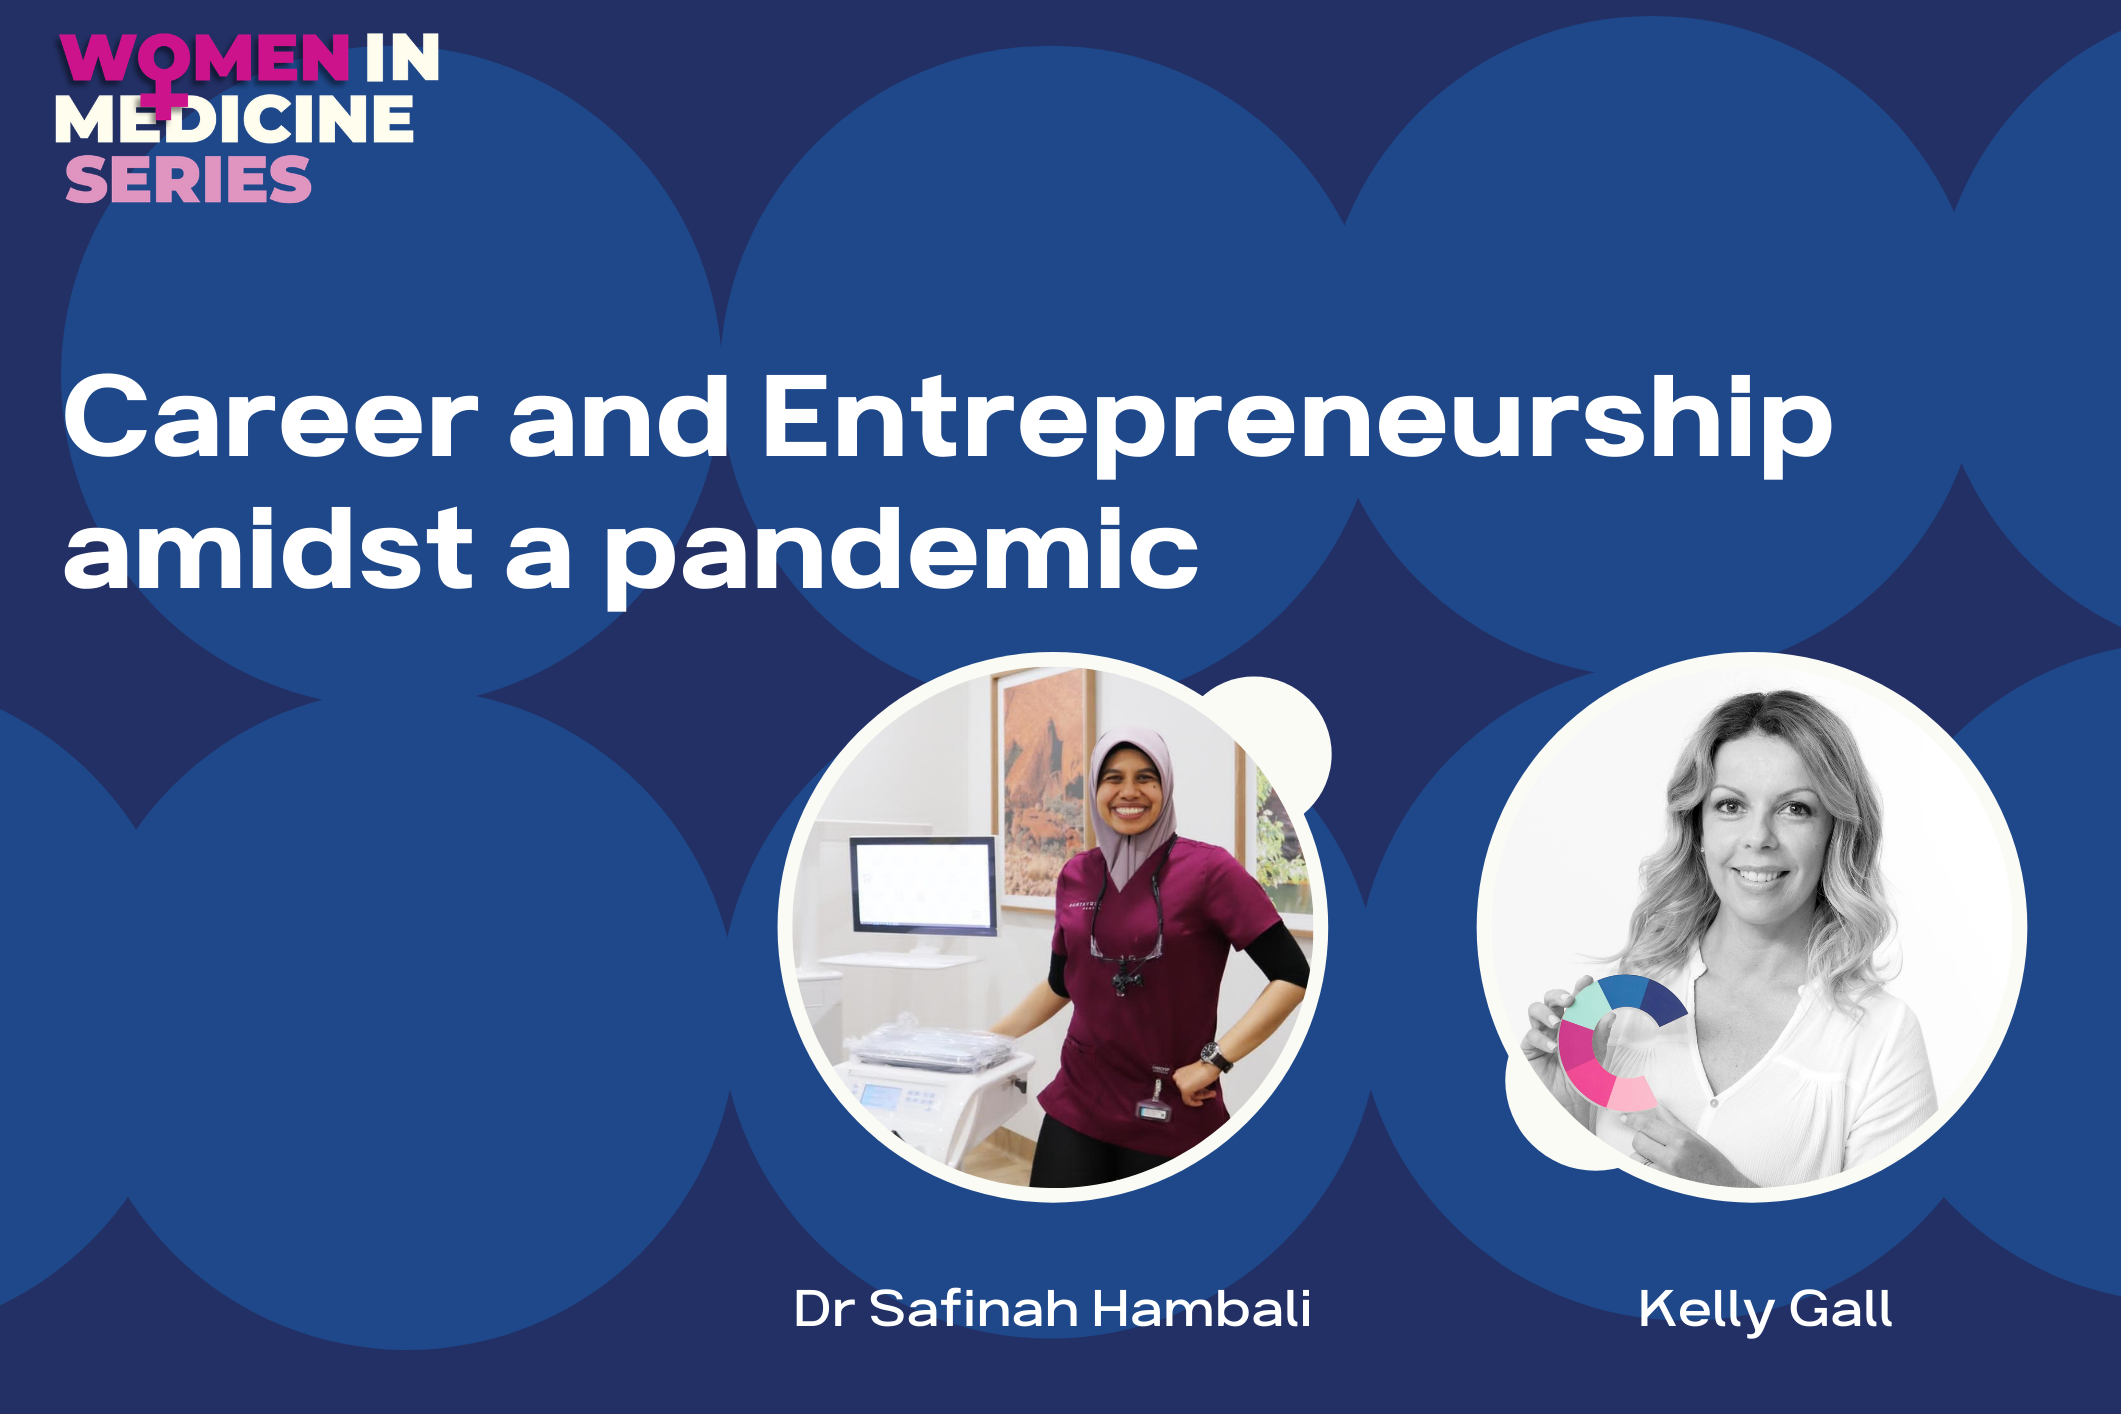 Women in Medicine LIVE - Career and Entrepreneurship amidst a pandemic Image